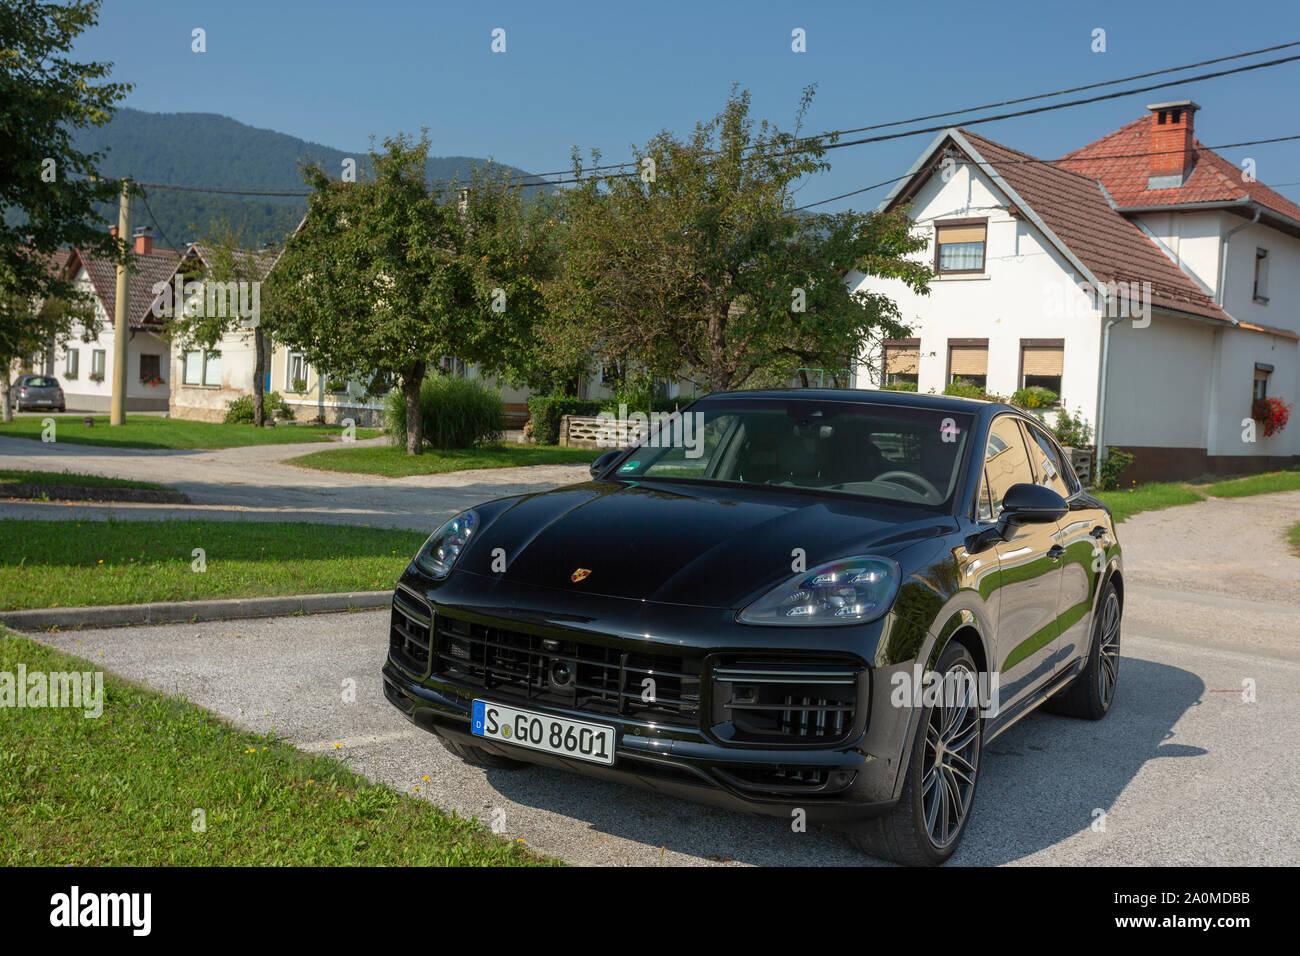 Slovenia Ljubljana 31 August 2019 Black Porsche Cayenne Coupe Turbo S From Stuttgart During Test Drive In Old European Town Stock Photo Alamy